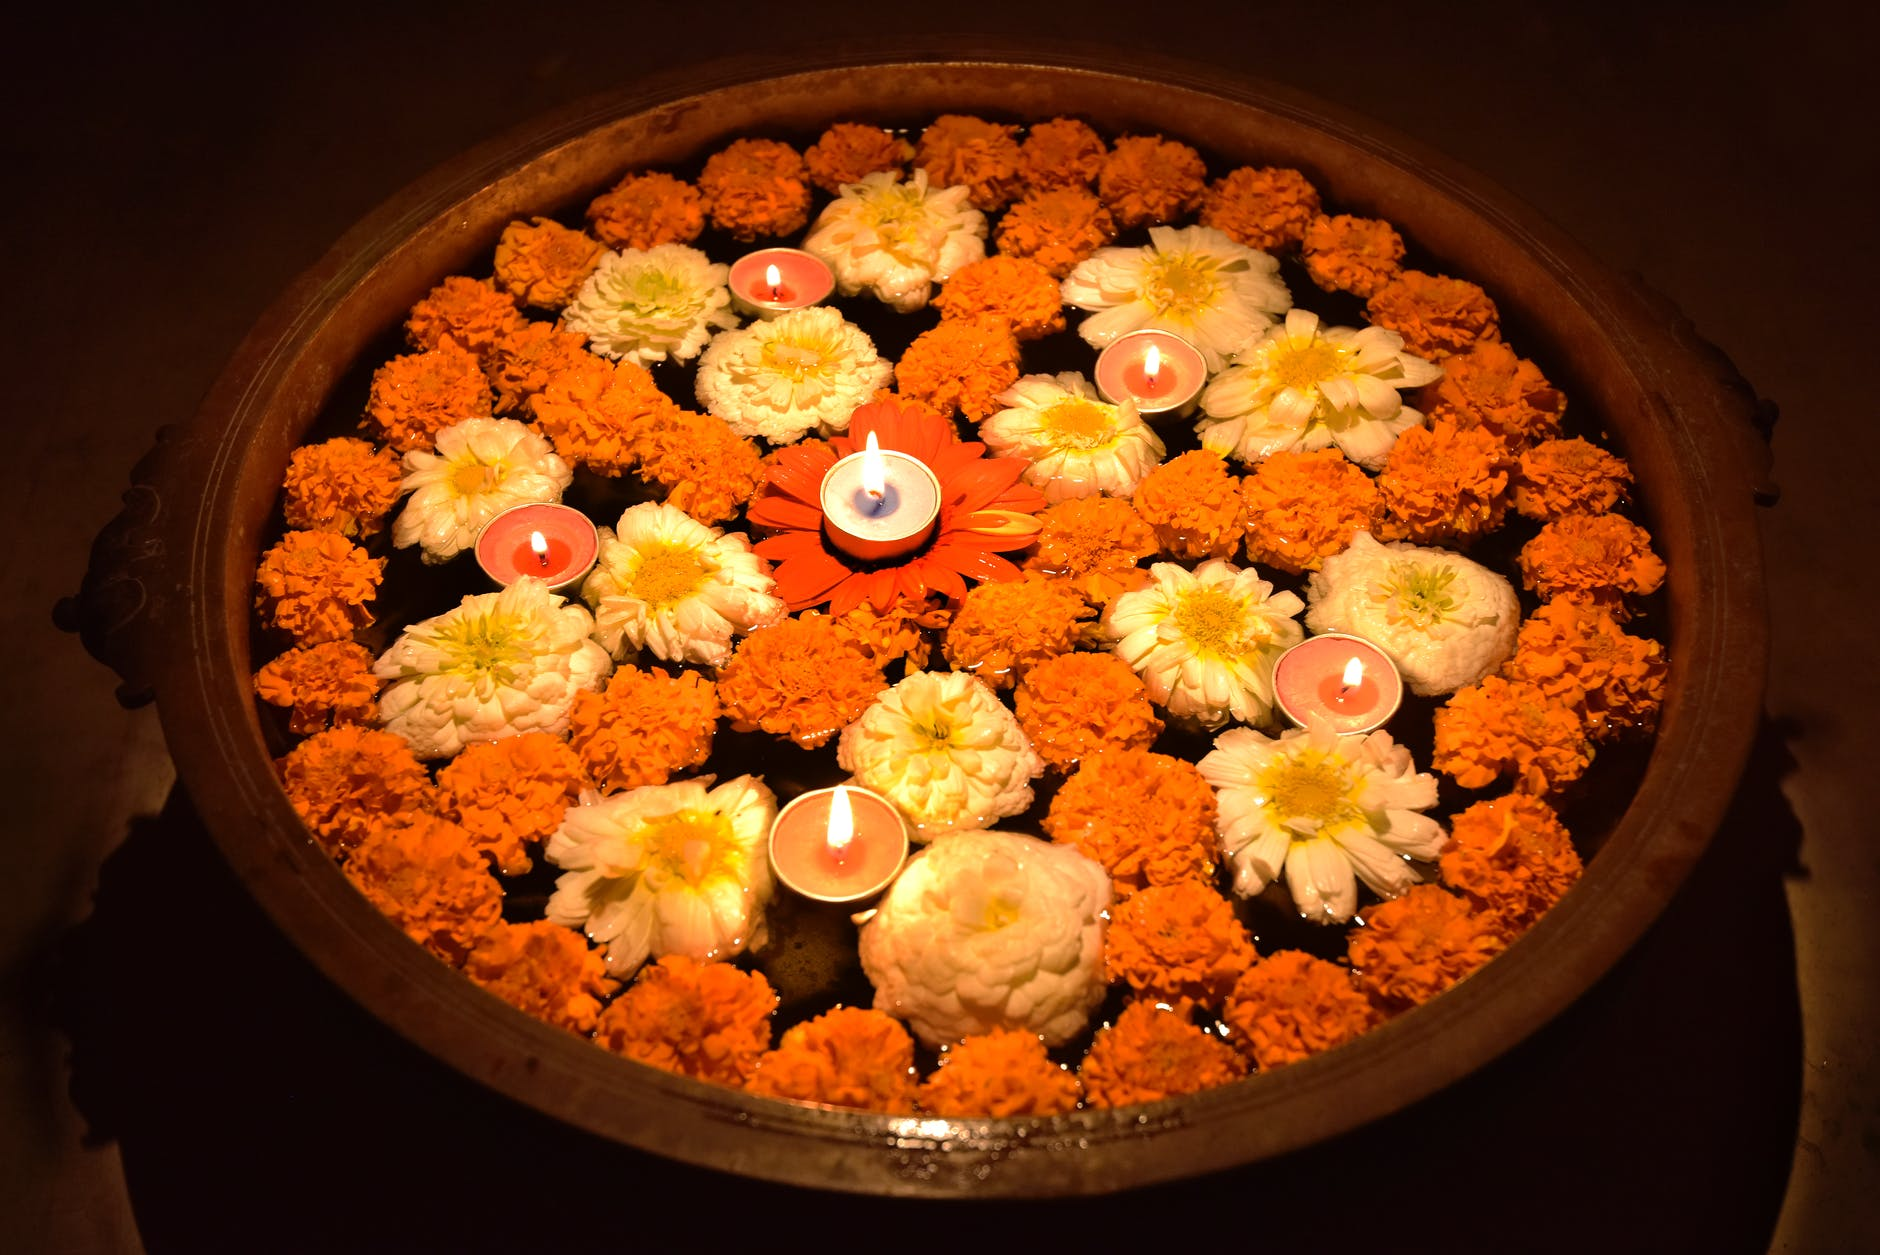 How to decorate the house for Diwali with flowers?